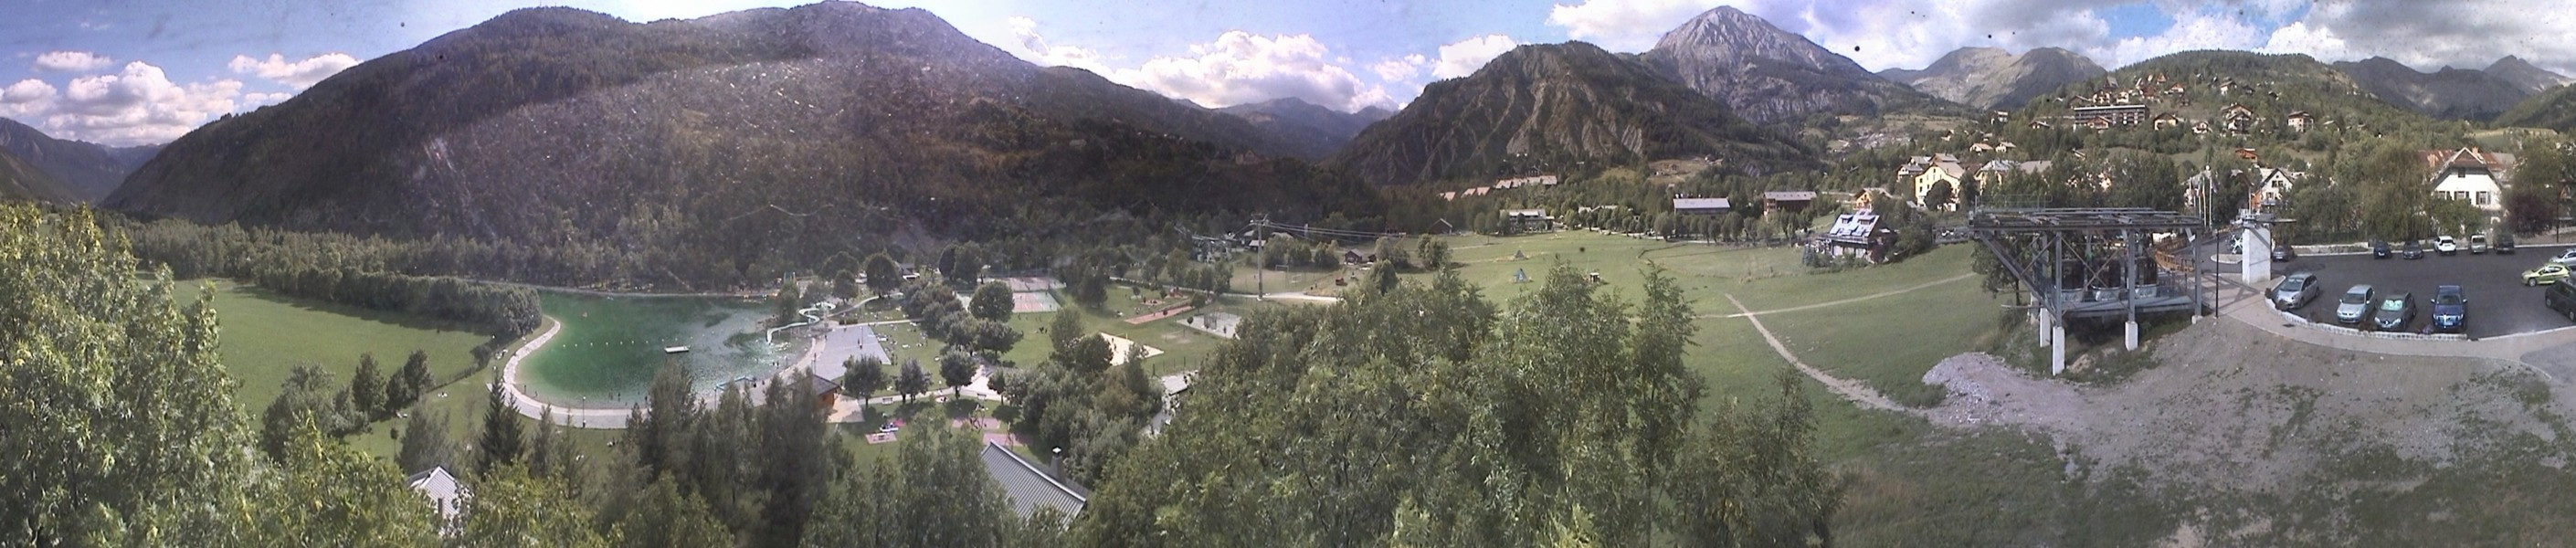 webcam val d'allos allos le village